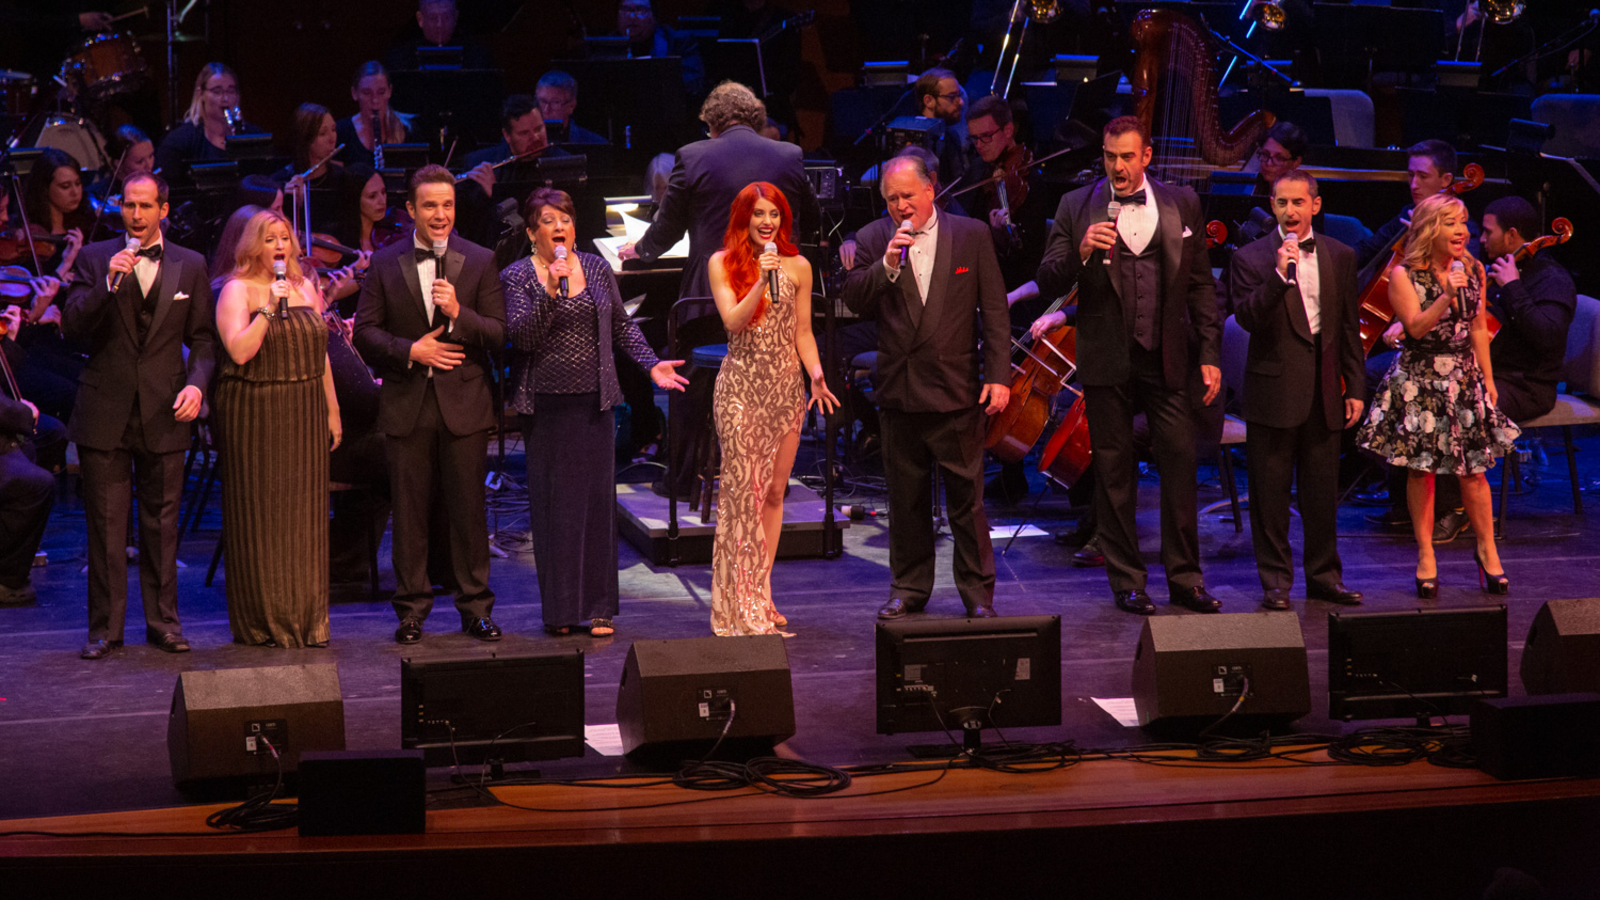 The finale of the 50th Anniversaru Gala Pops Concert